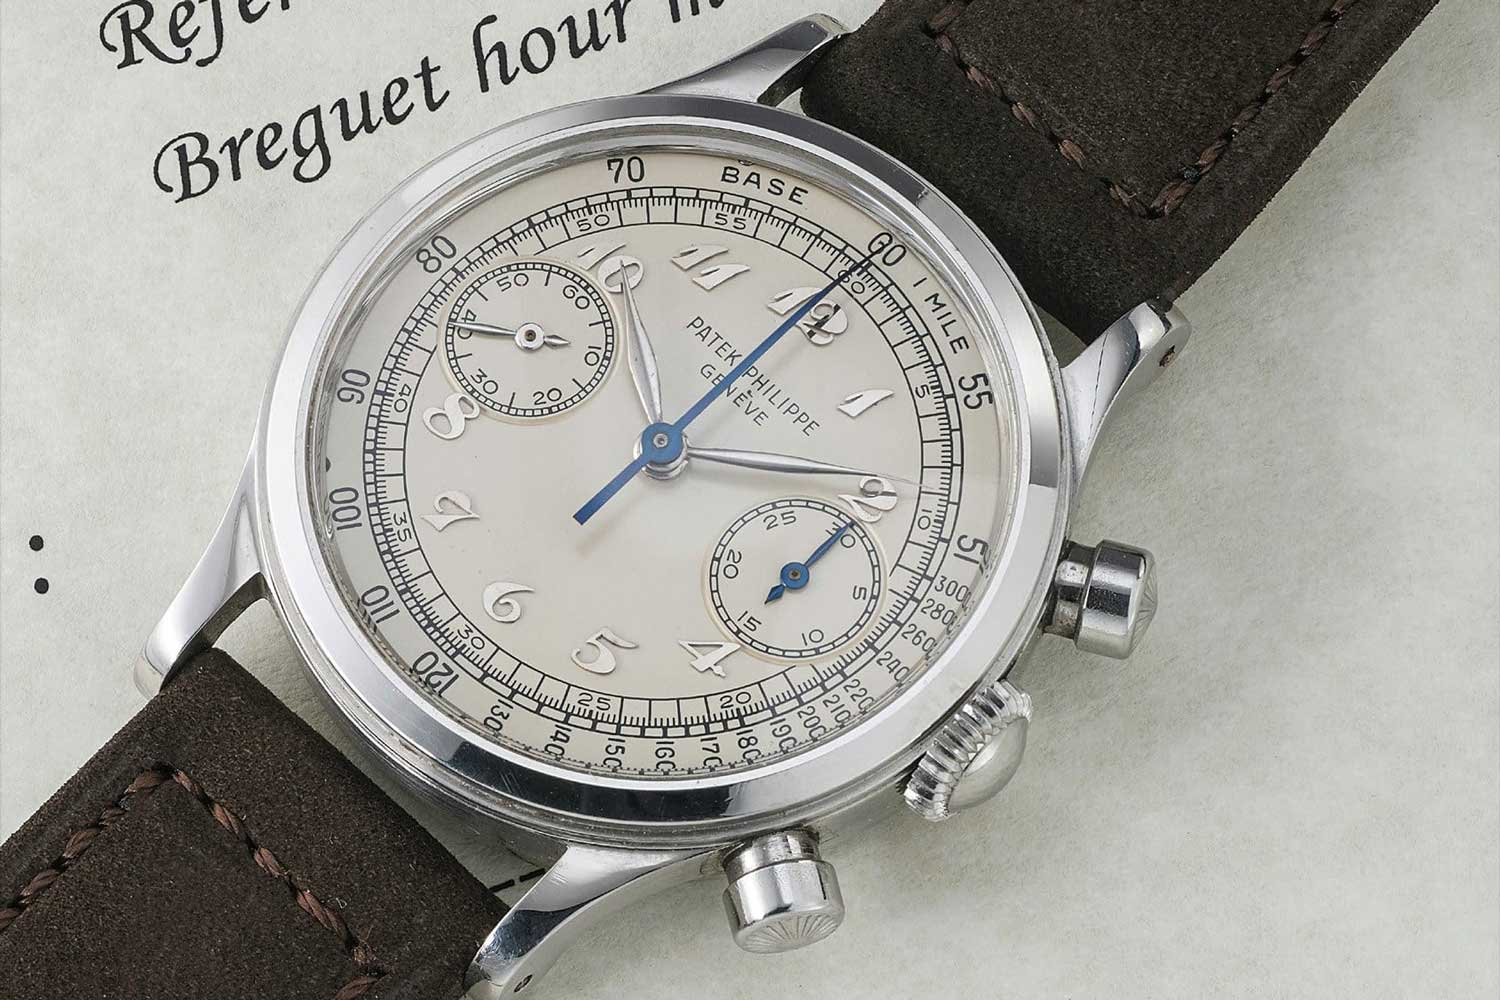 Patek Philippe Ref. 1463 chronograph in steel (Image: Phillips)